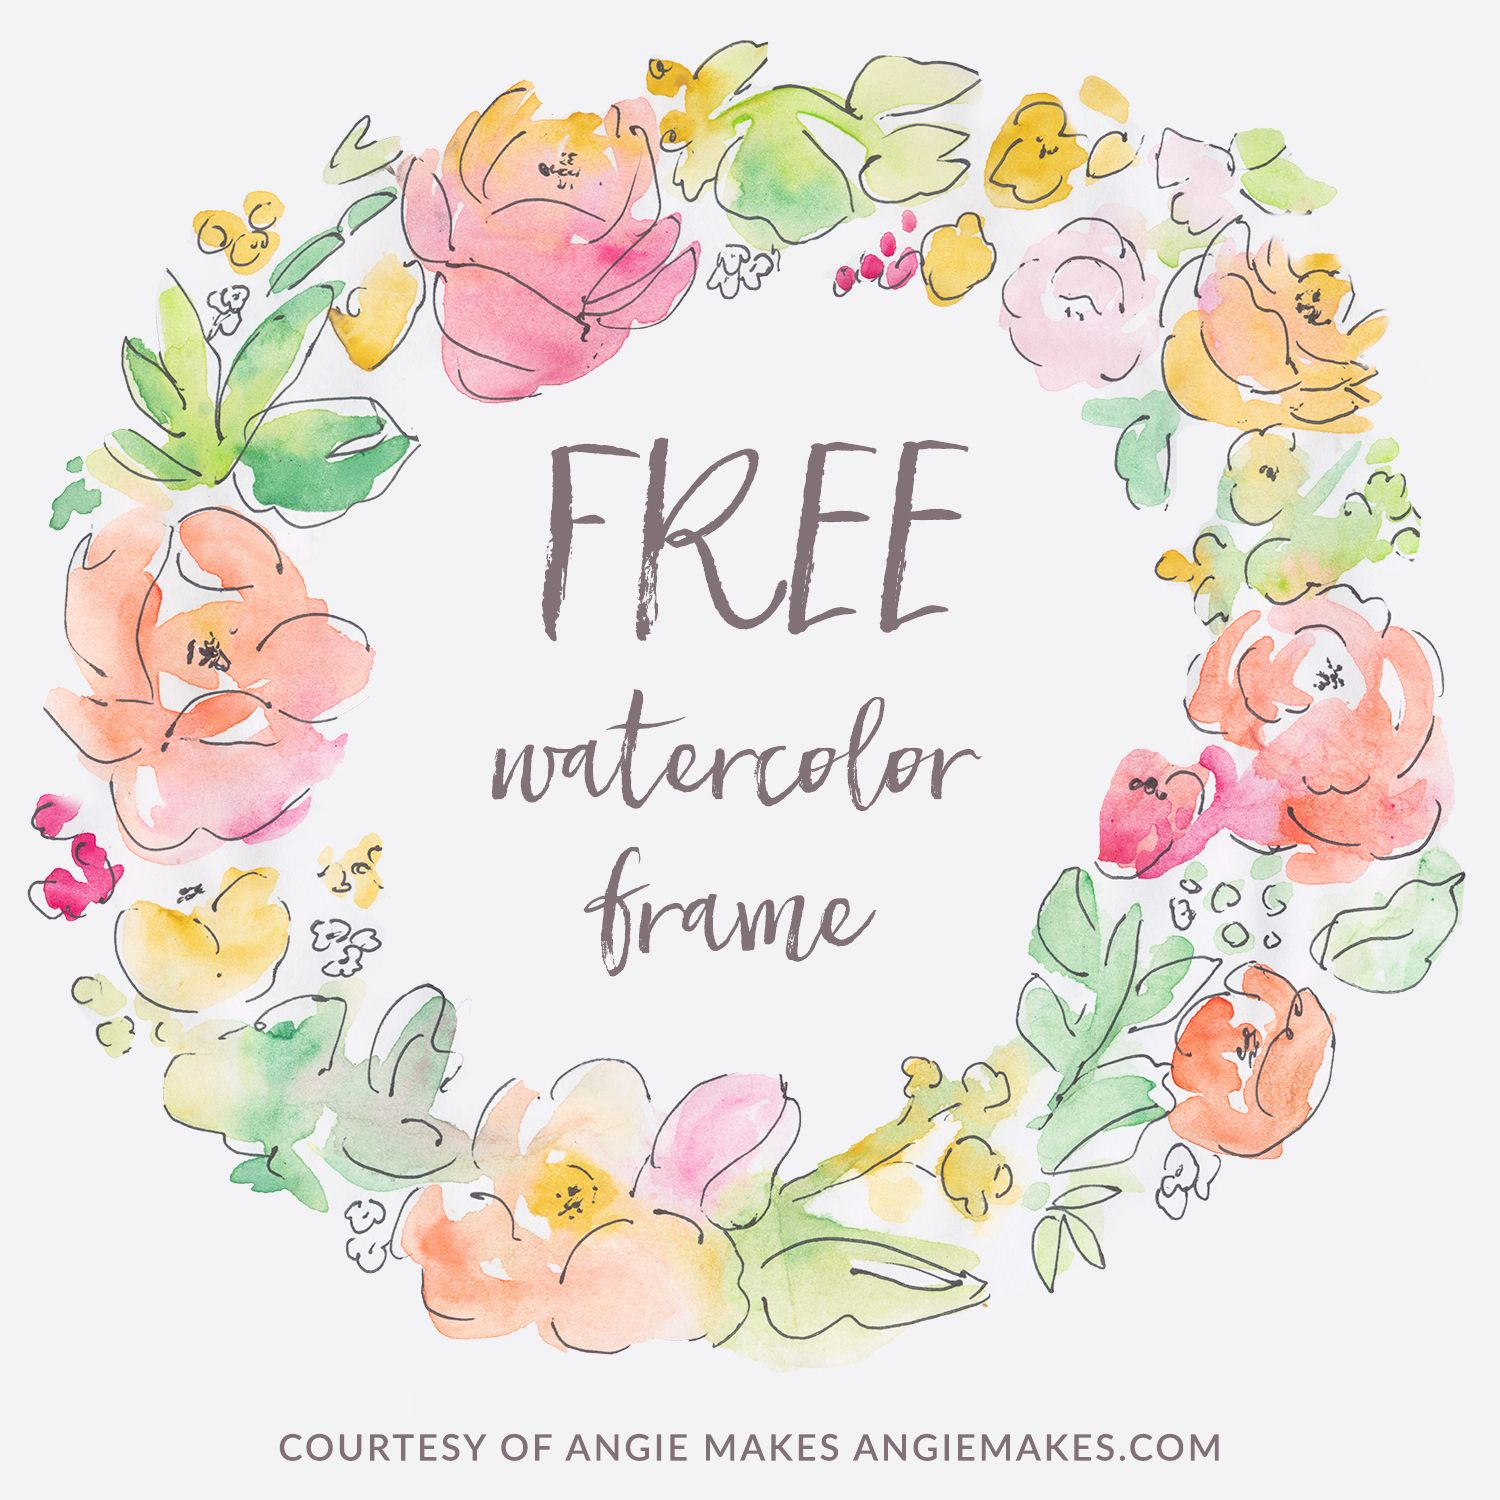 Free Watercolor Flower Frame Background Design Just Add Your Own Text To This Wreath DIY Love It